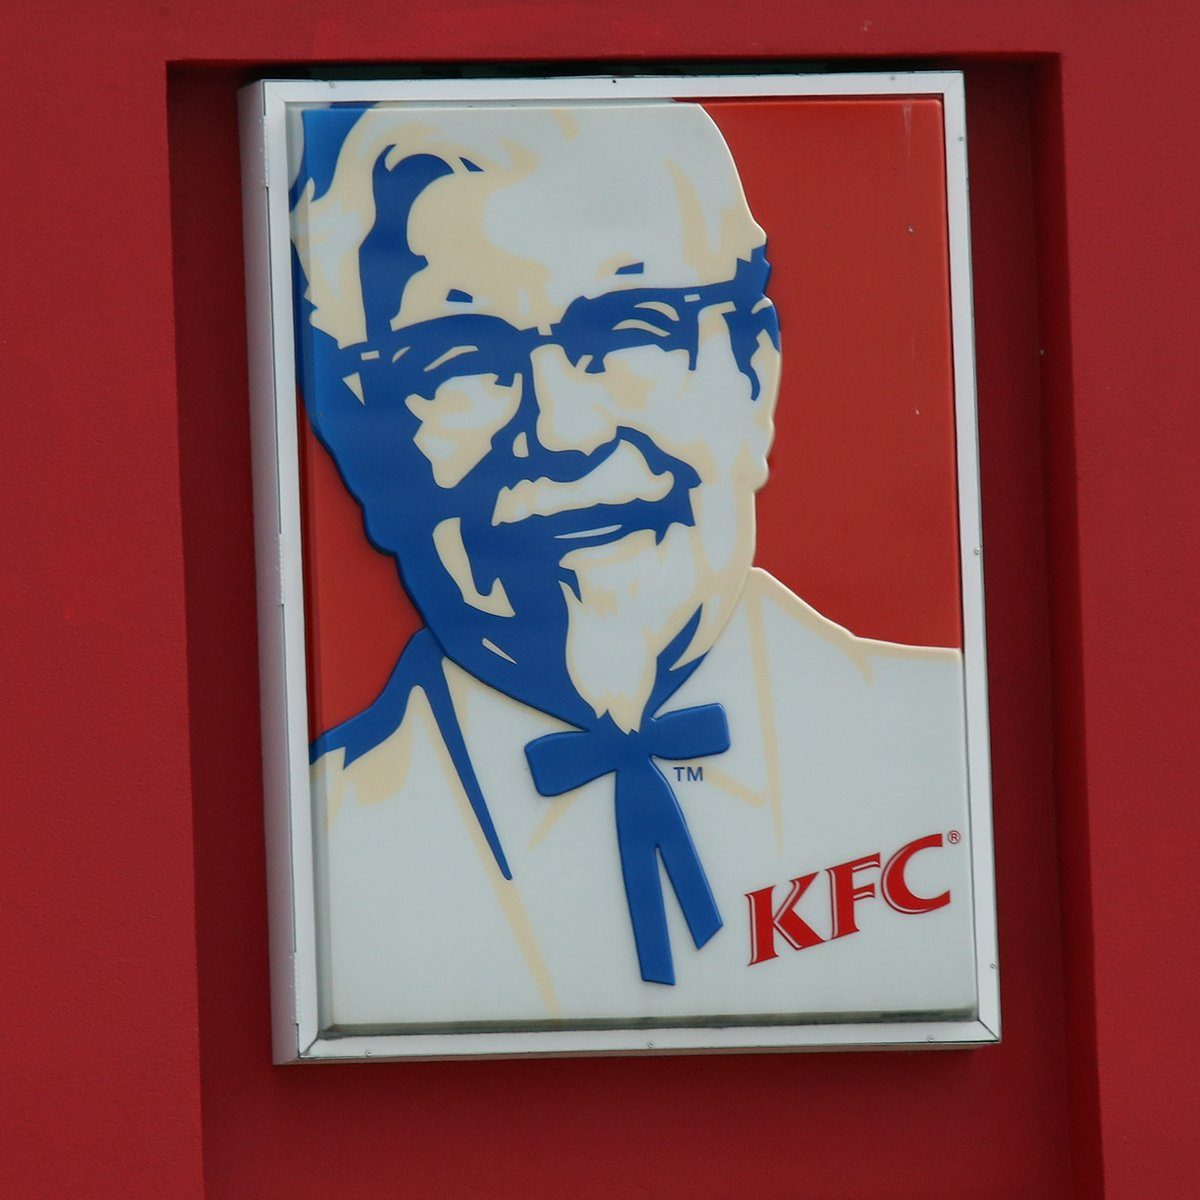 WANTAGH, NEW YORK - MARCH 16: An image of the sign for Kentucky Fried Chicken as photographed on March 16, 2020 in Wantagh, New York. (Photo by Bruce Bennett/Getty Images)